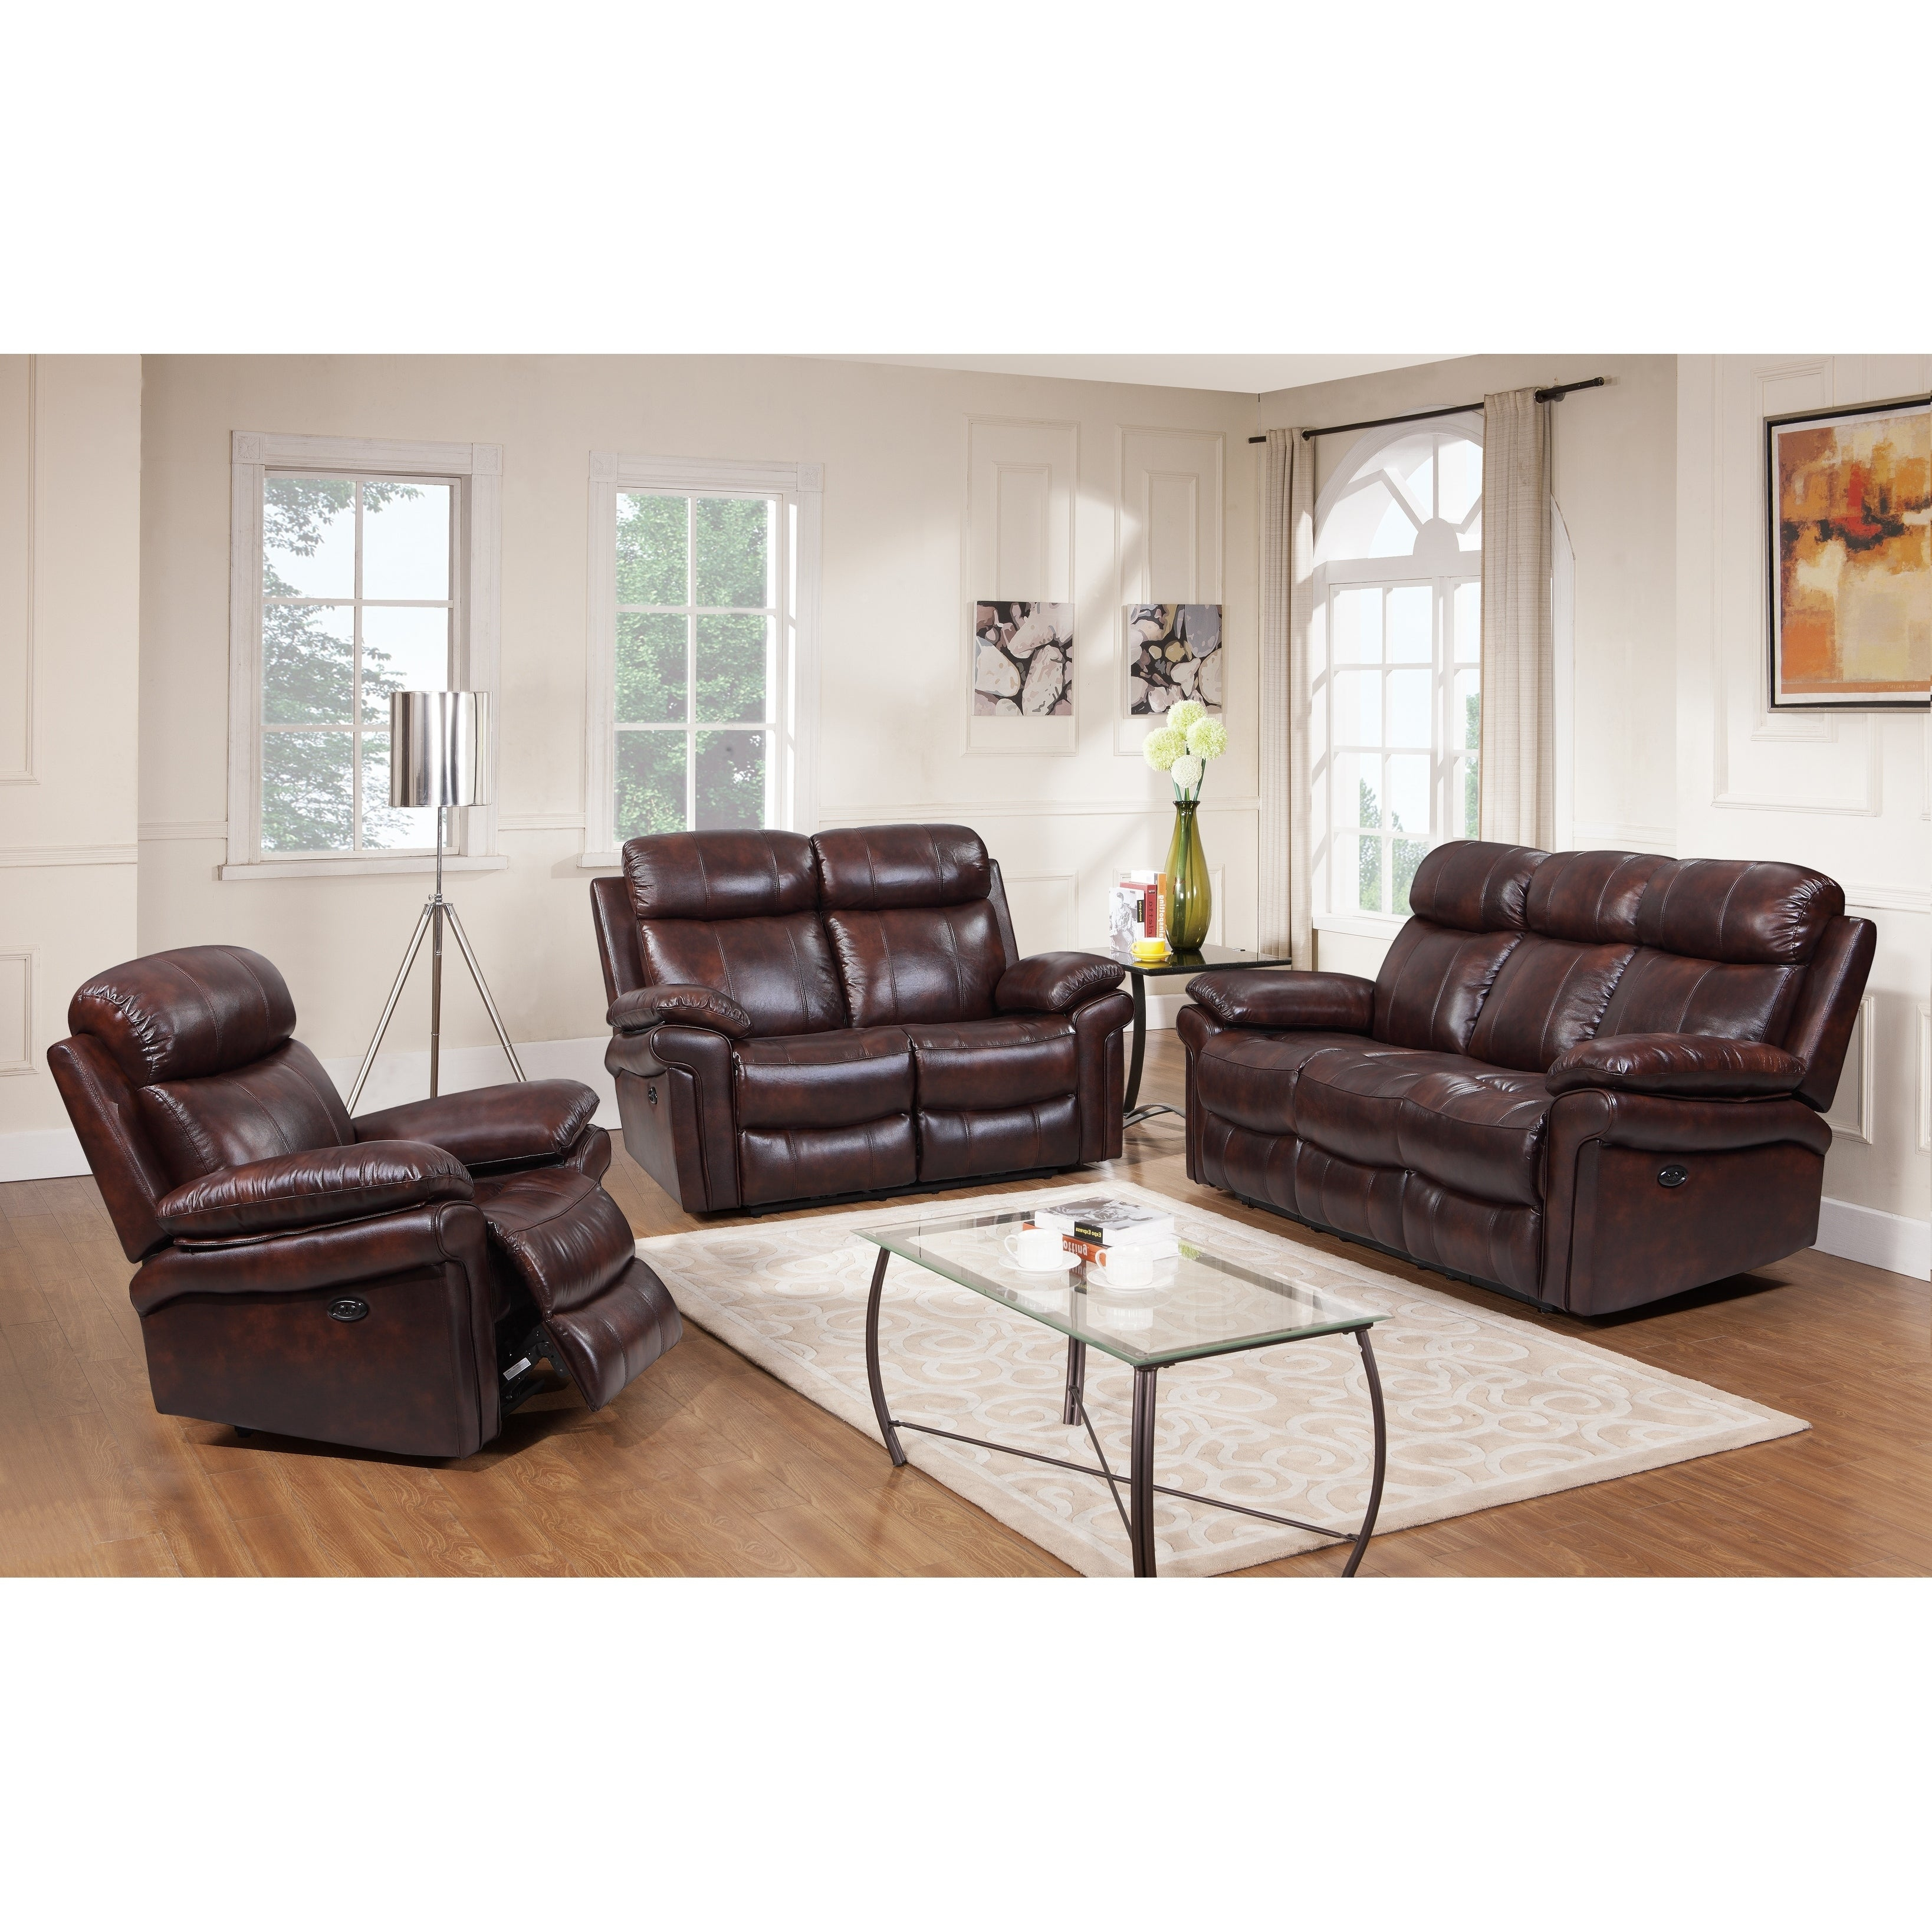 Hudson Top Grain Leather Power Reclining Living Room Set Brown Blue Red with regard to 13 Awesome Designs of How to Improve Power Reclining Living Room Set